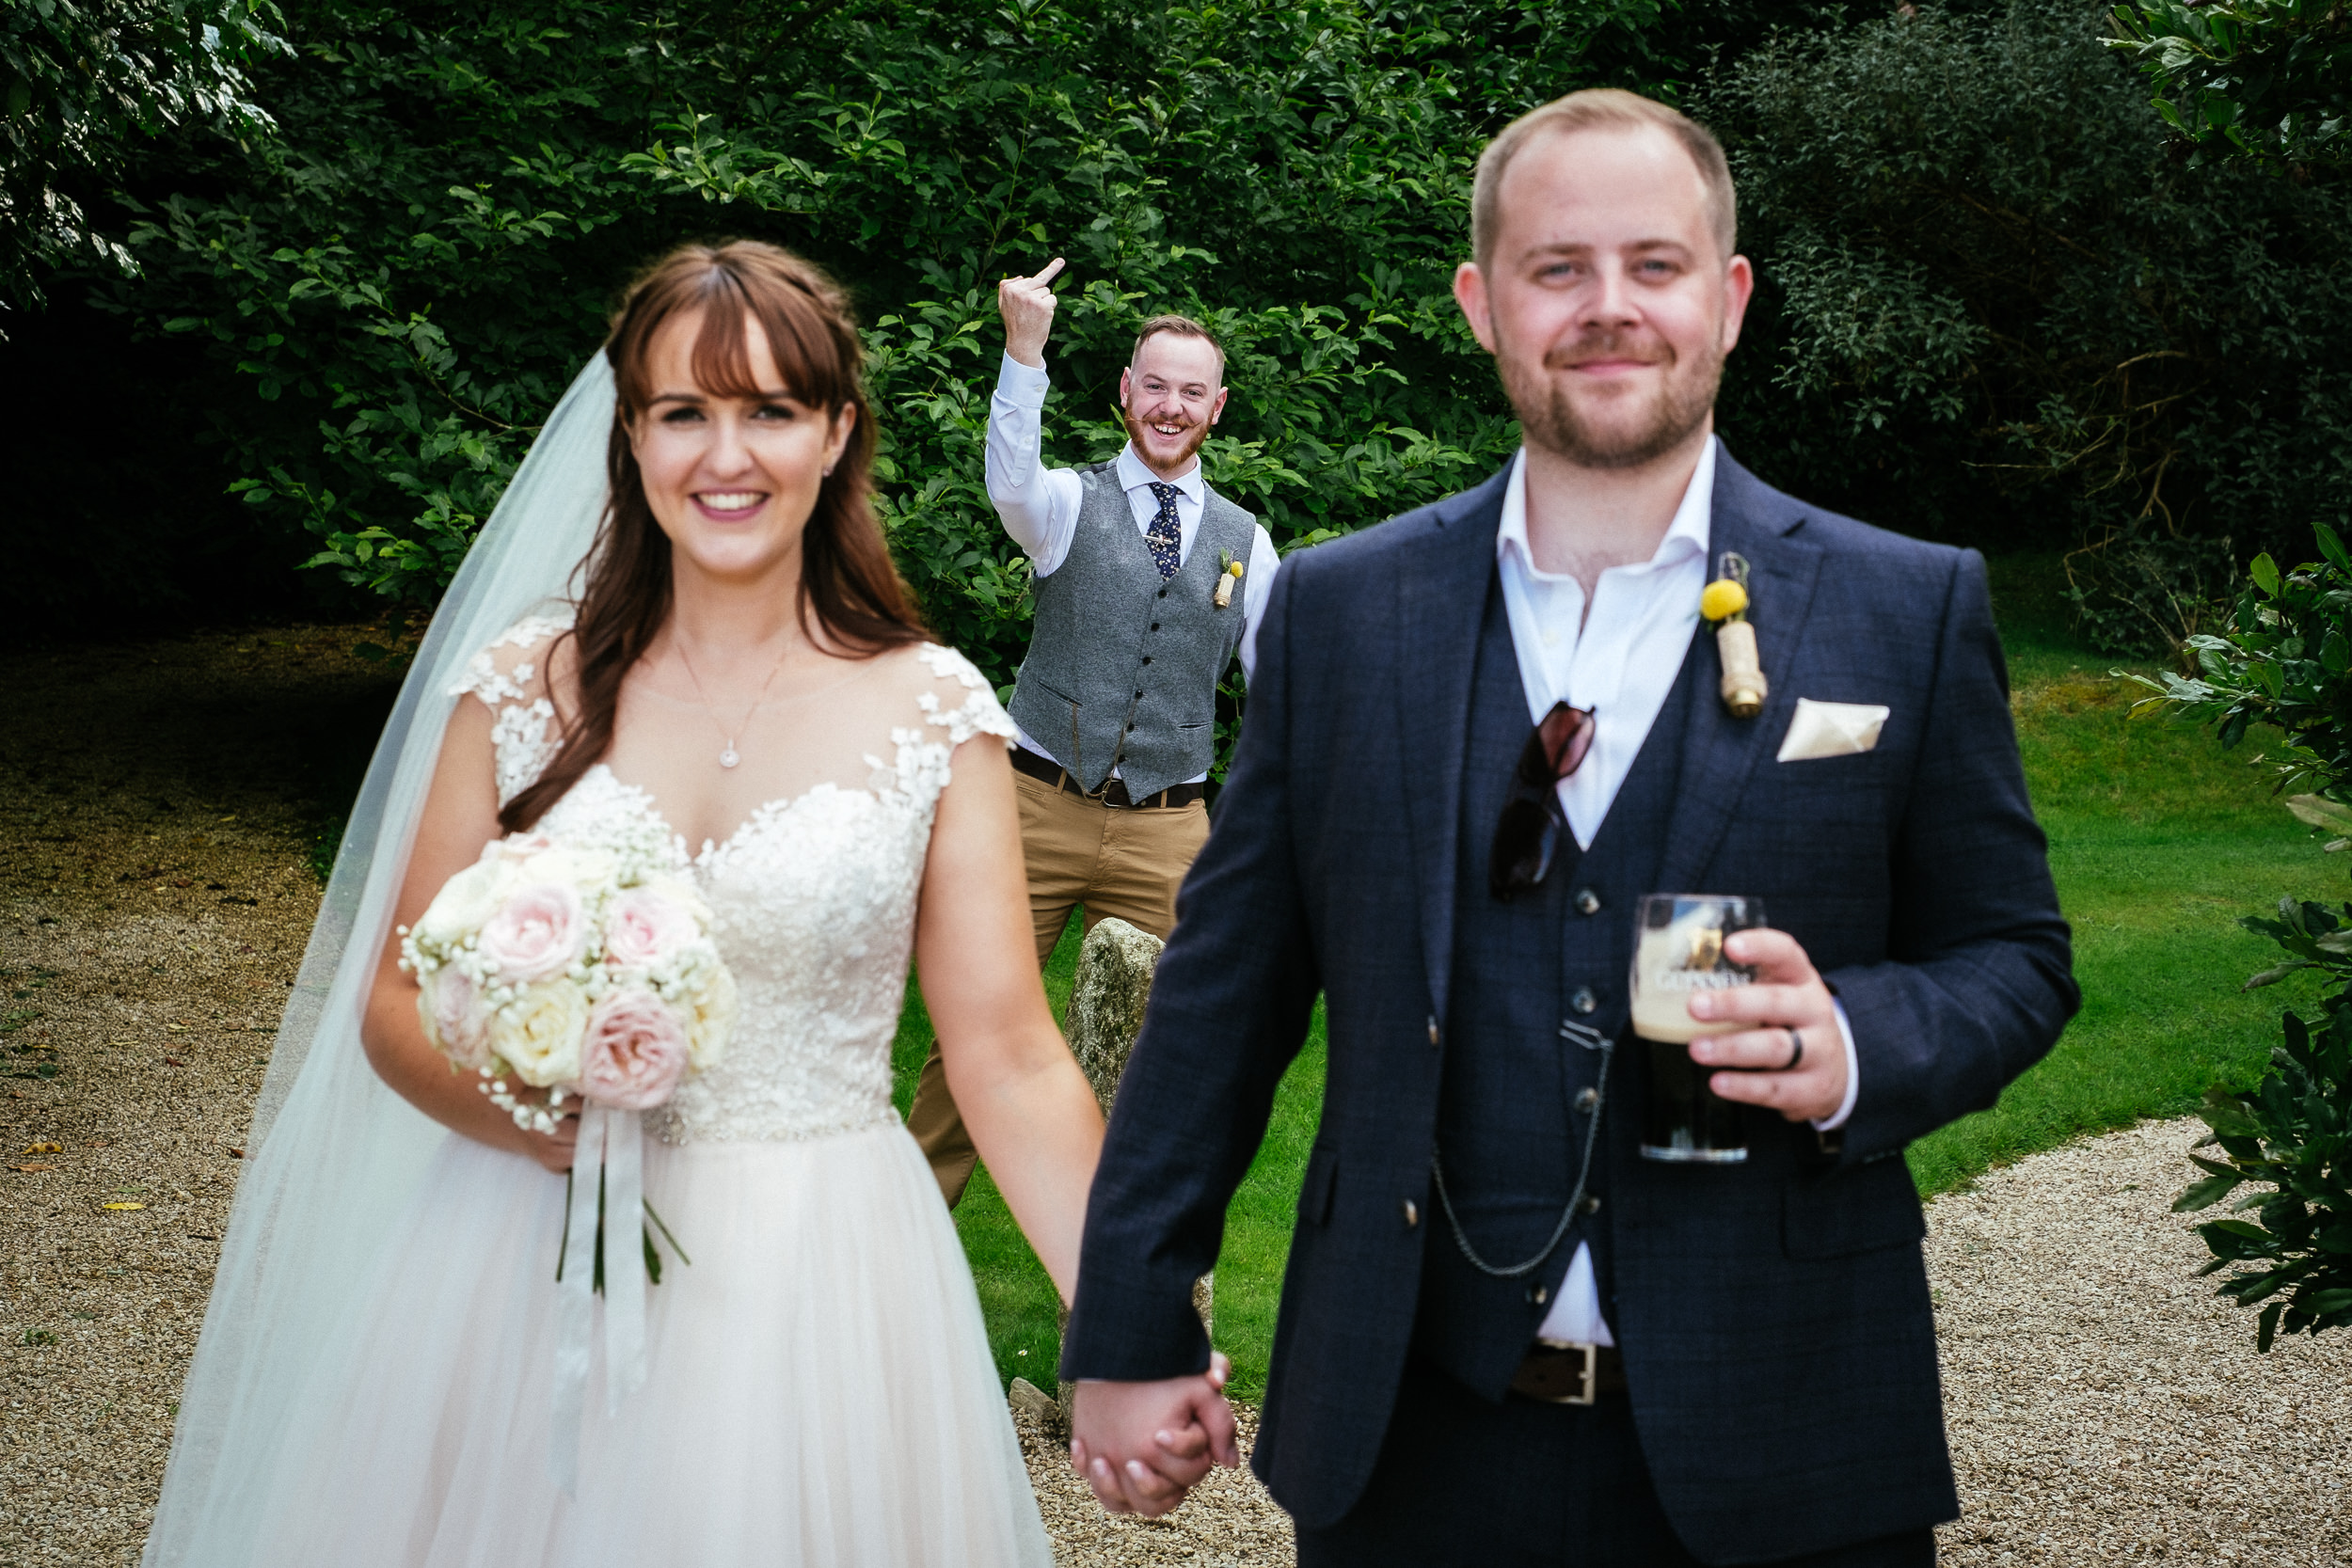 bride and groom posing with guest gesticulating behind them